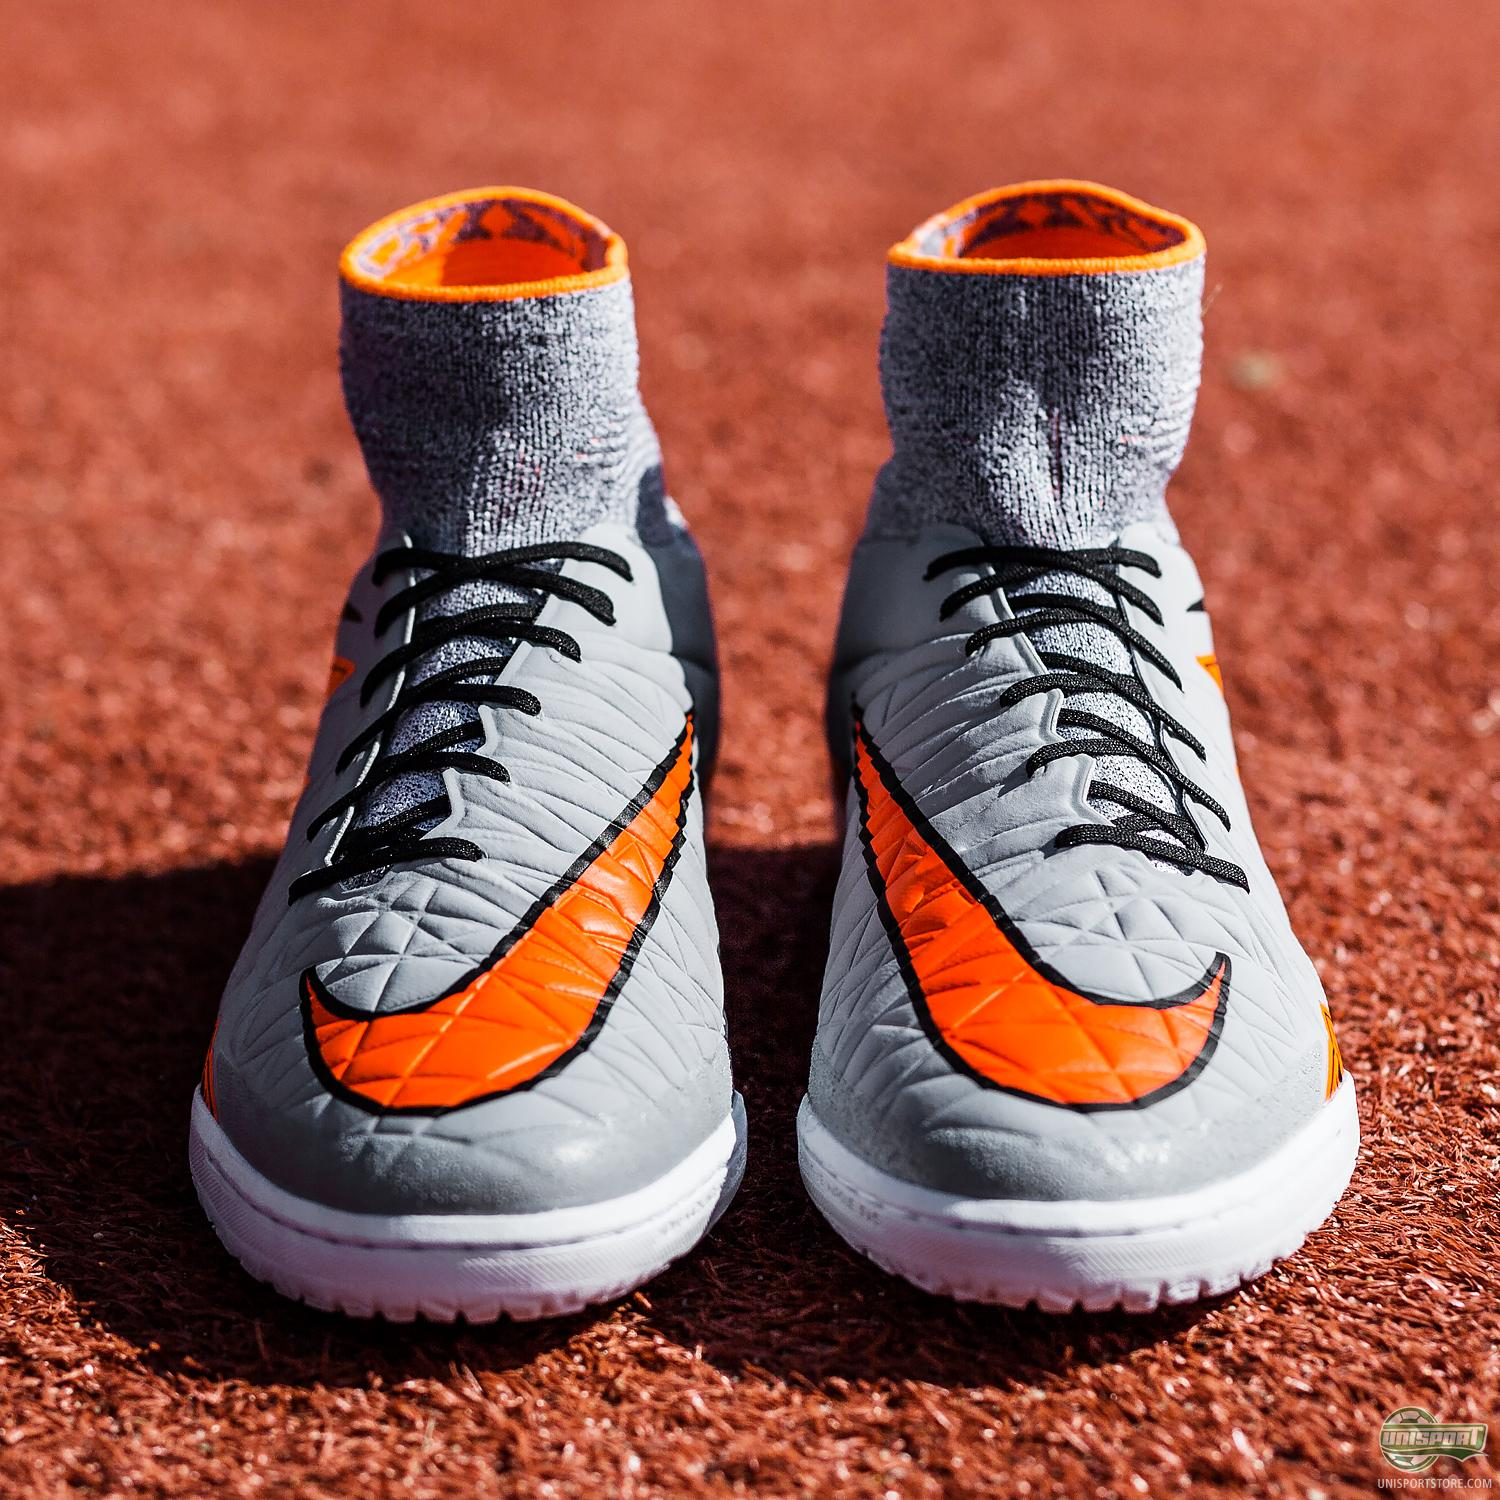 6f7acfb5243a4c We have barely calmed down after the release of the Hypervenom Phantom II